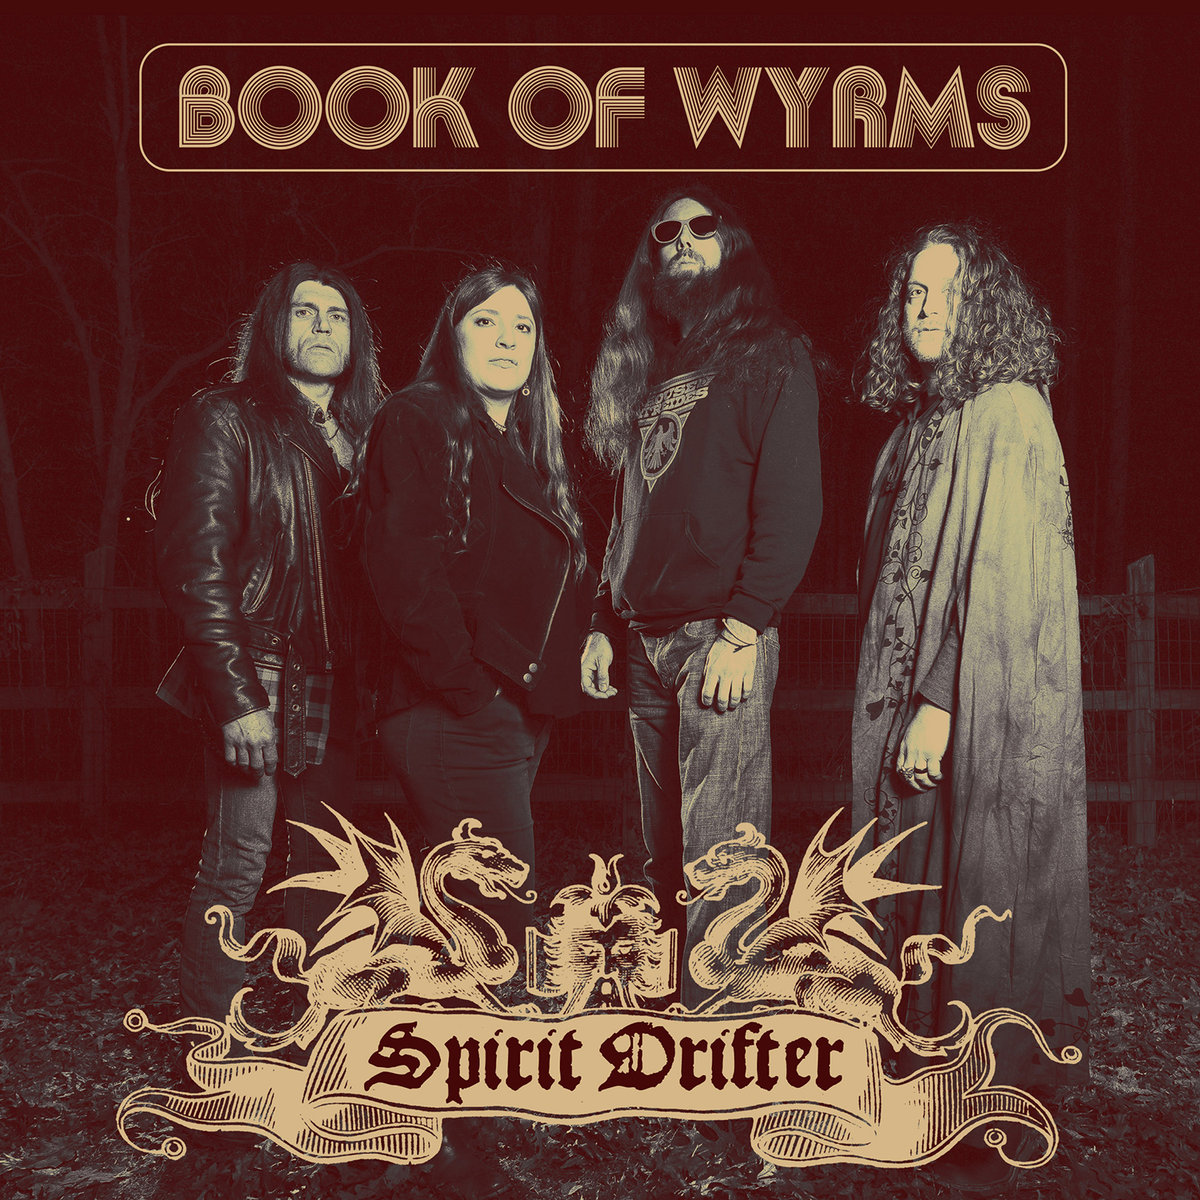 book of wyrms spirit drifter